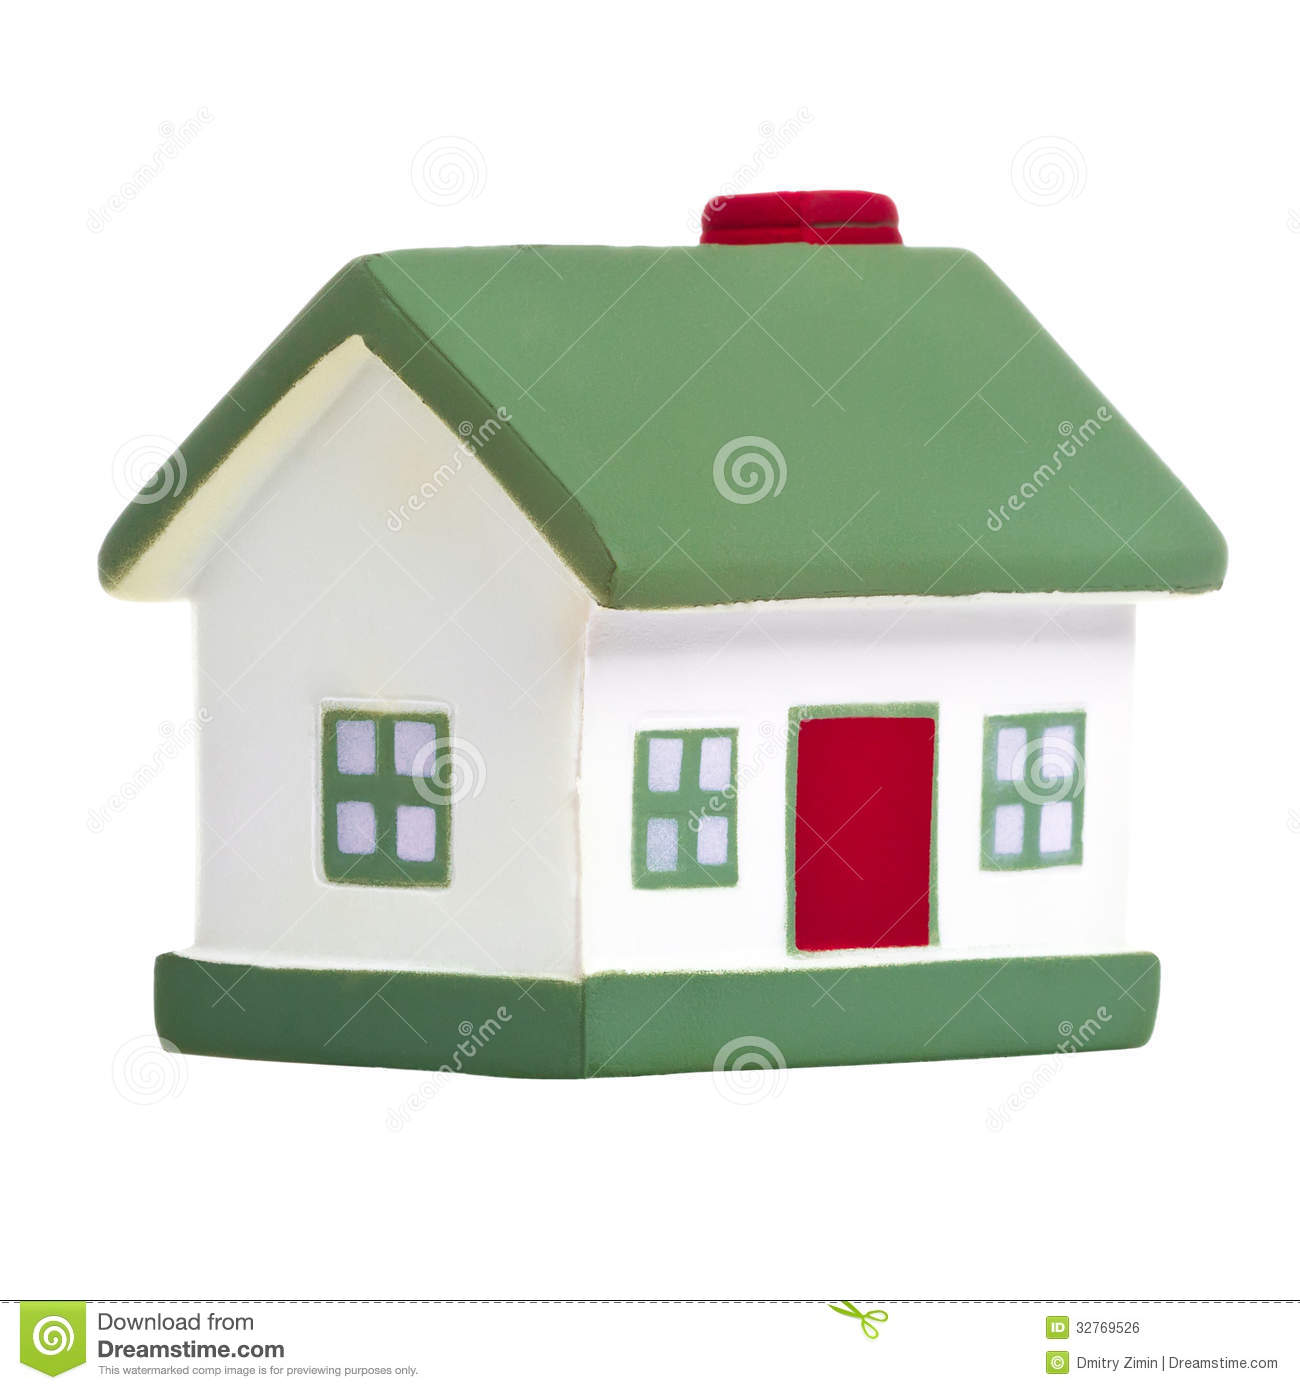 Toy house with green roof